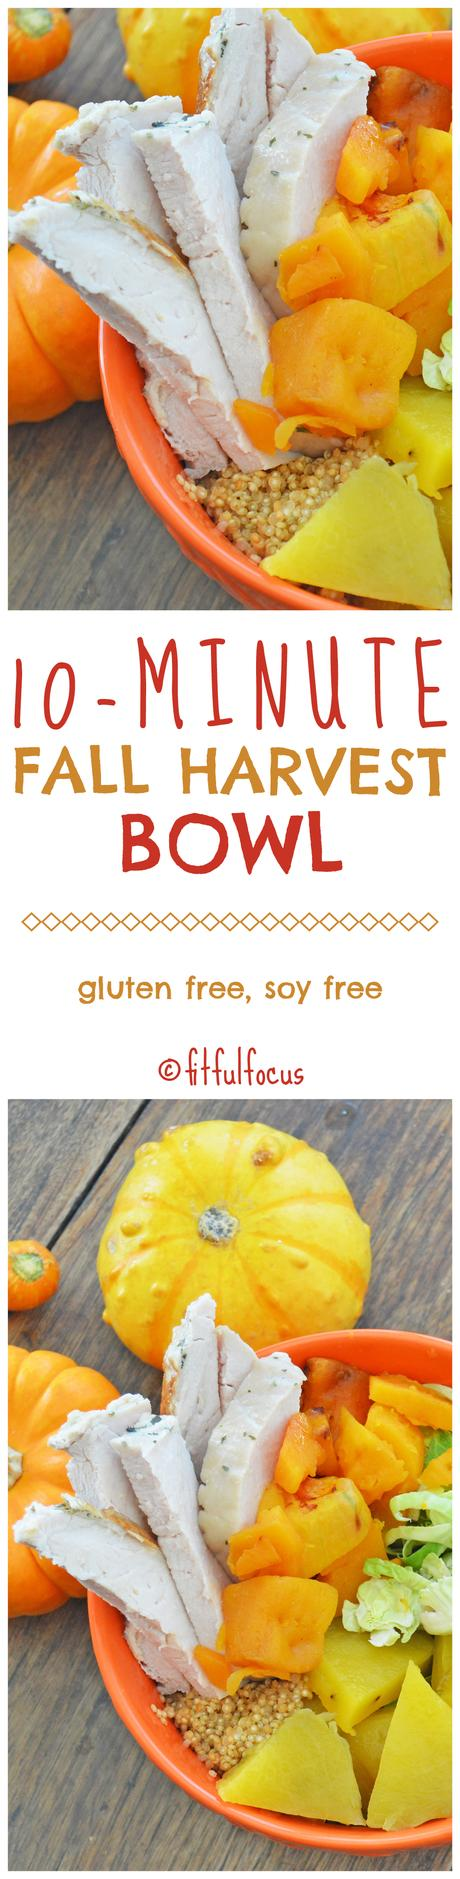 10-Minute Fall Harvest Bowl (gluten free, soy free)